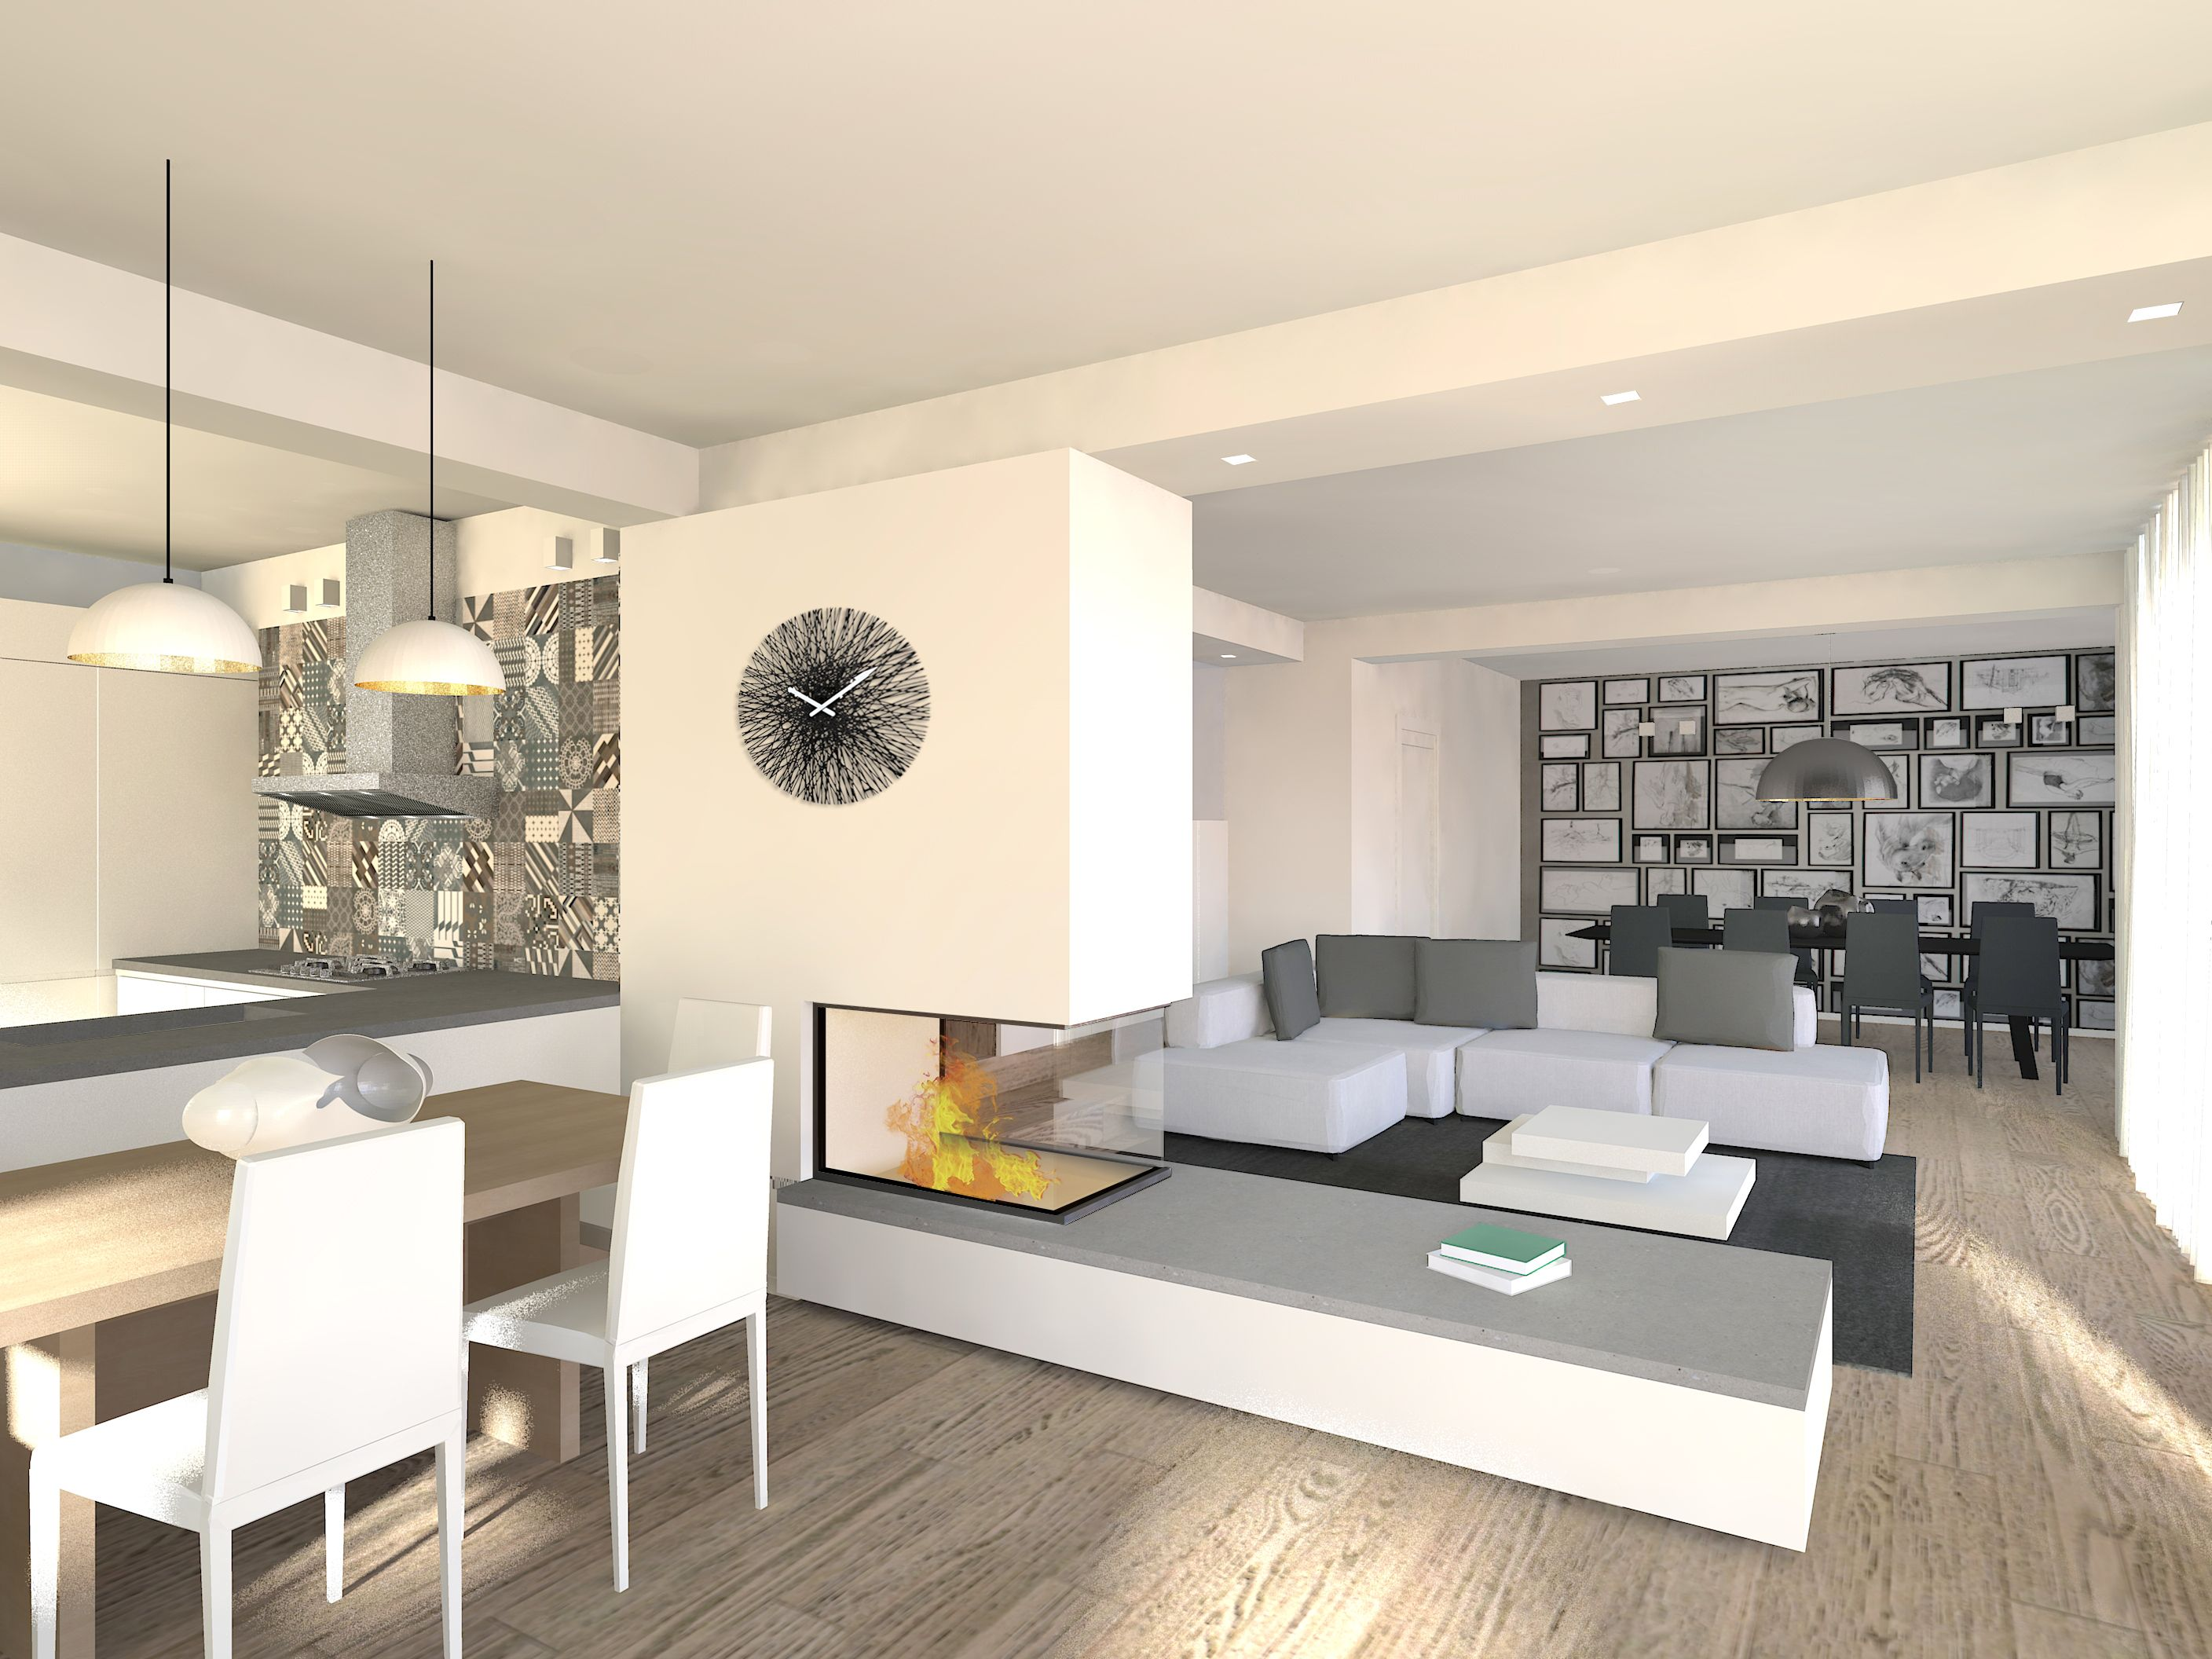 Caminetto Bifacciale Centro Stanza Flaviabenigniarchitetto Living Openspace Loftstyle Kitchen